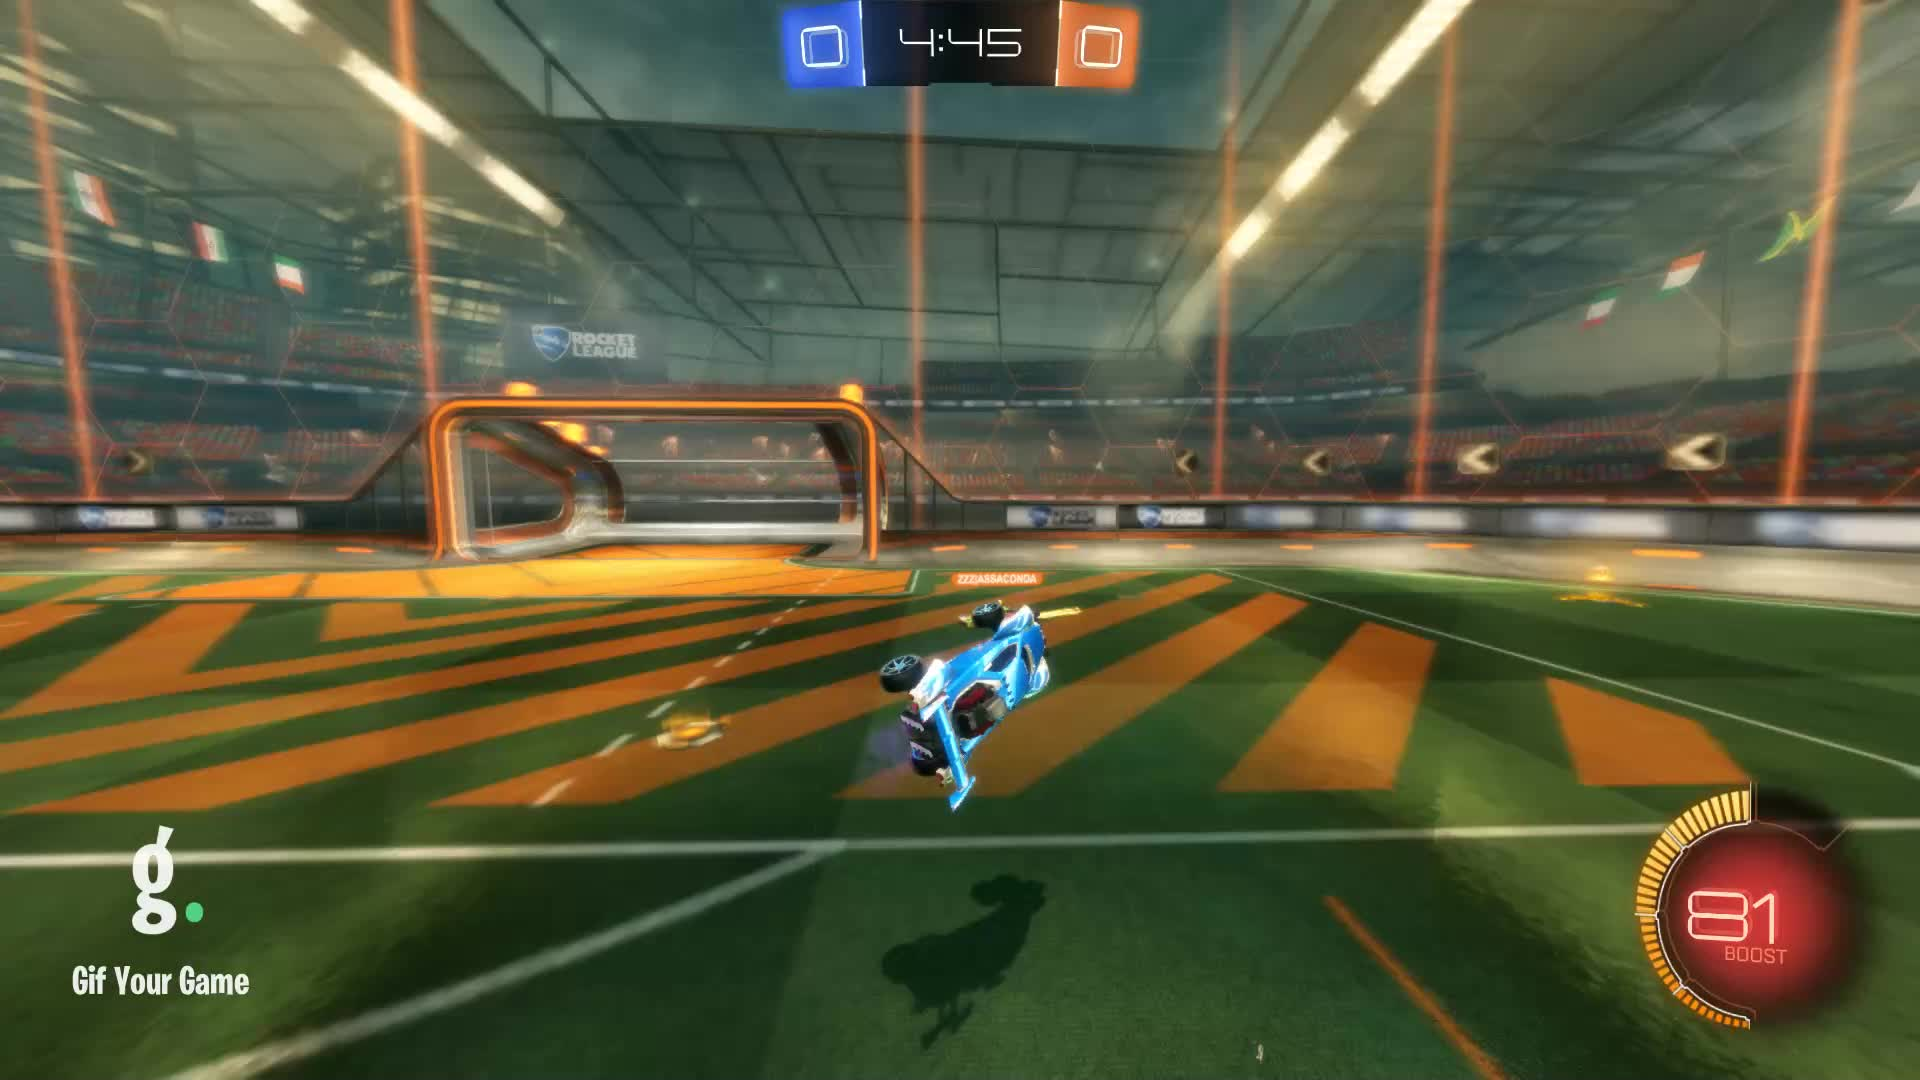 Gif Your Game, GifYourGame, Phi Sig, Rocket League, RocketLeague, Goal 1: Phi Sig GIFs